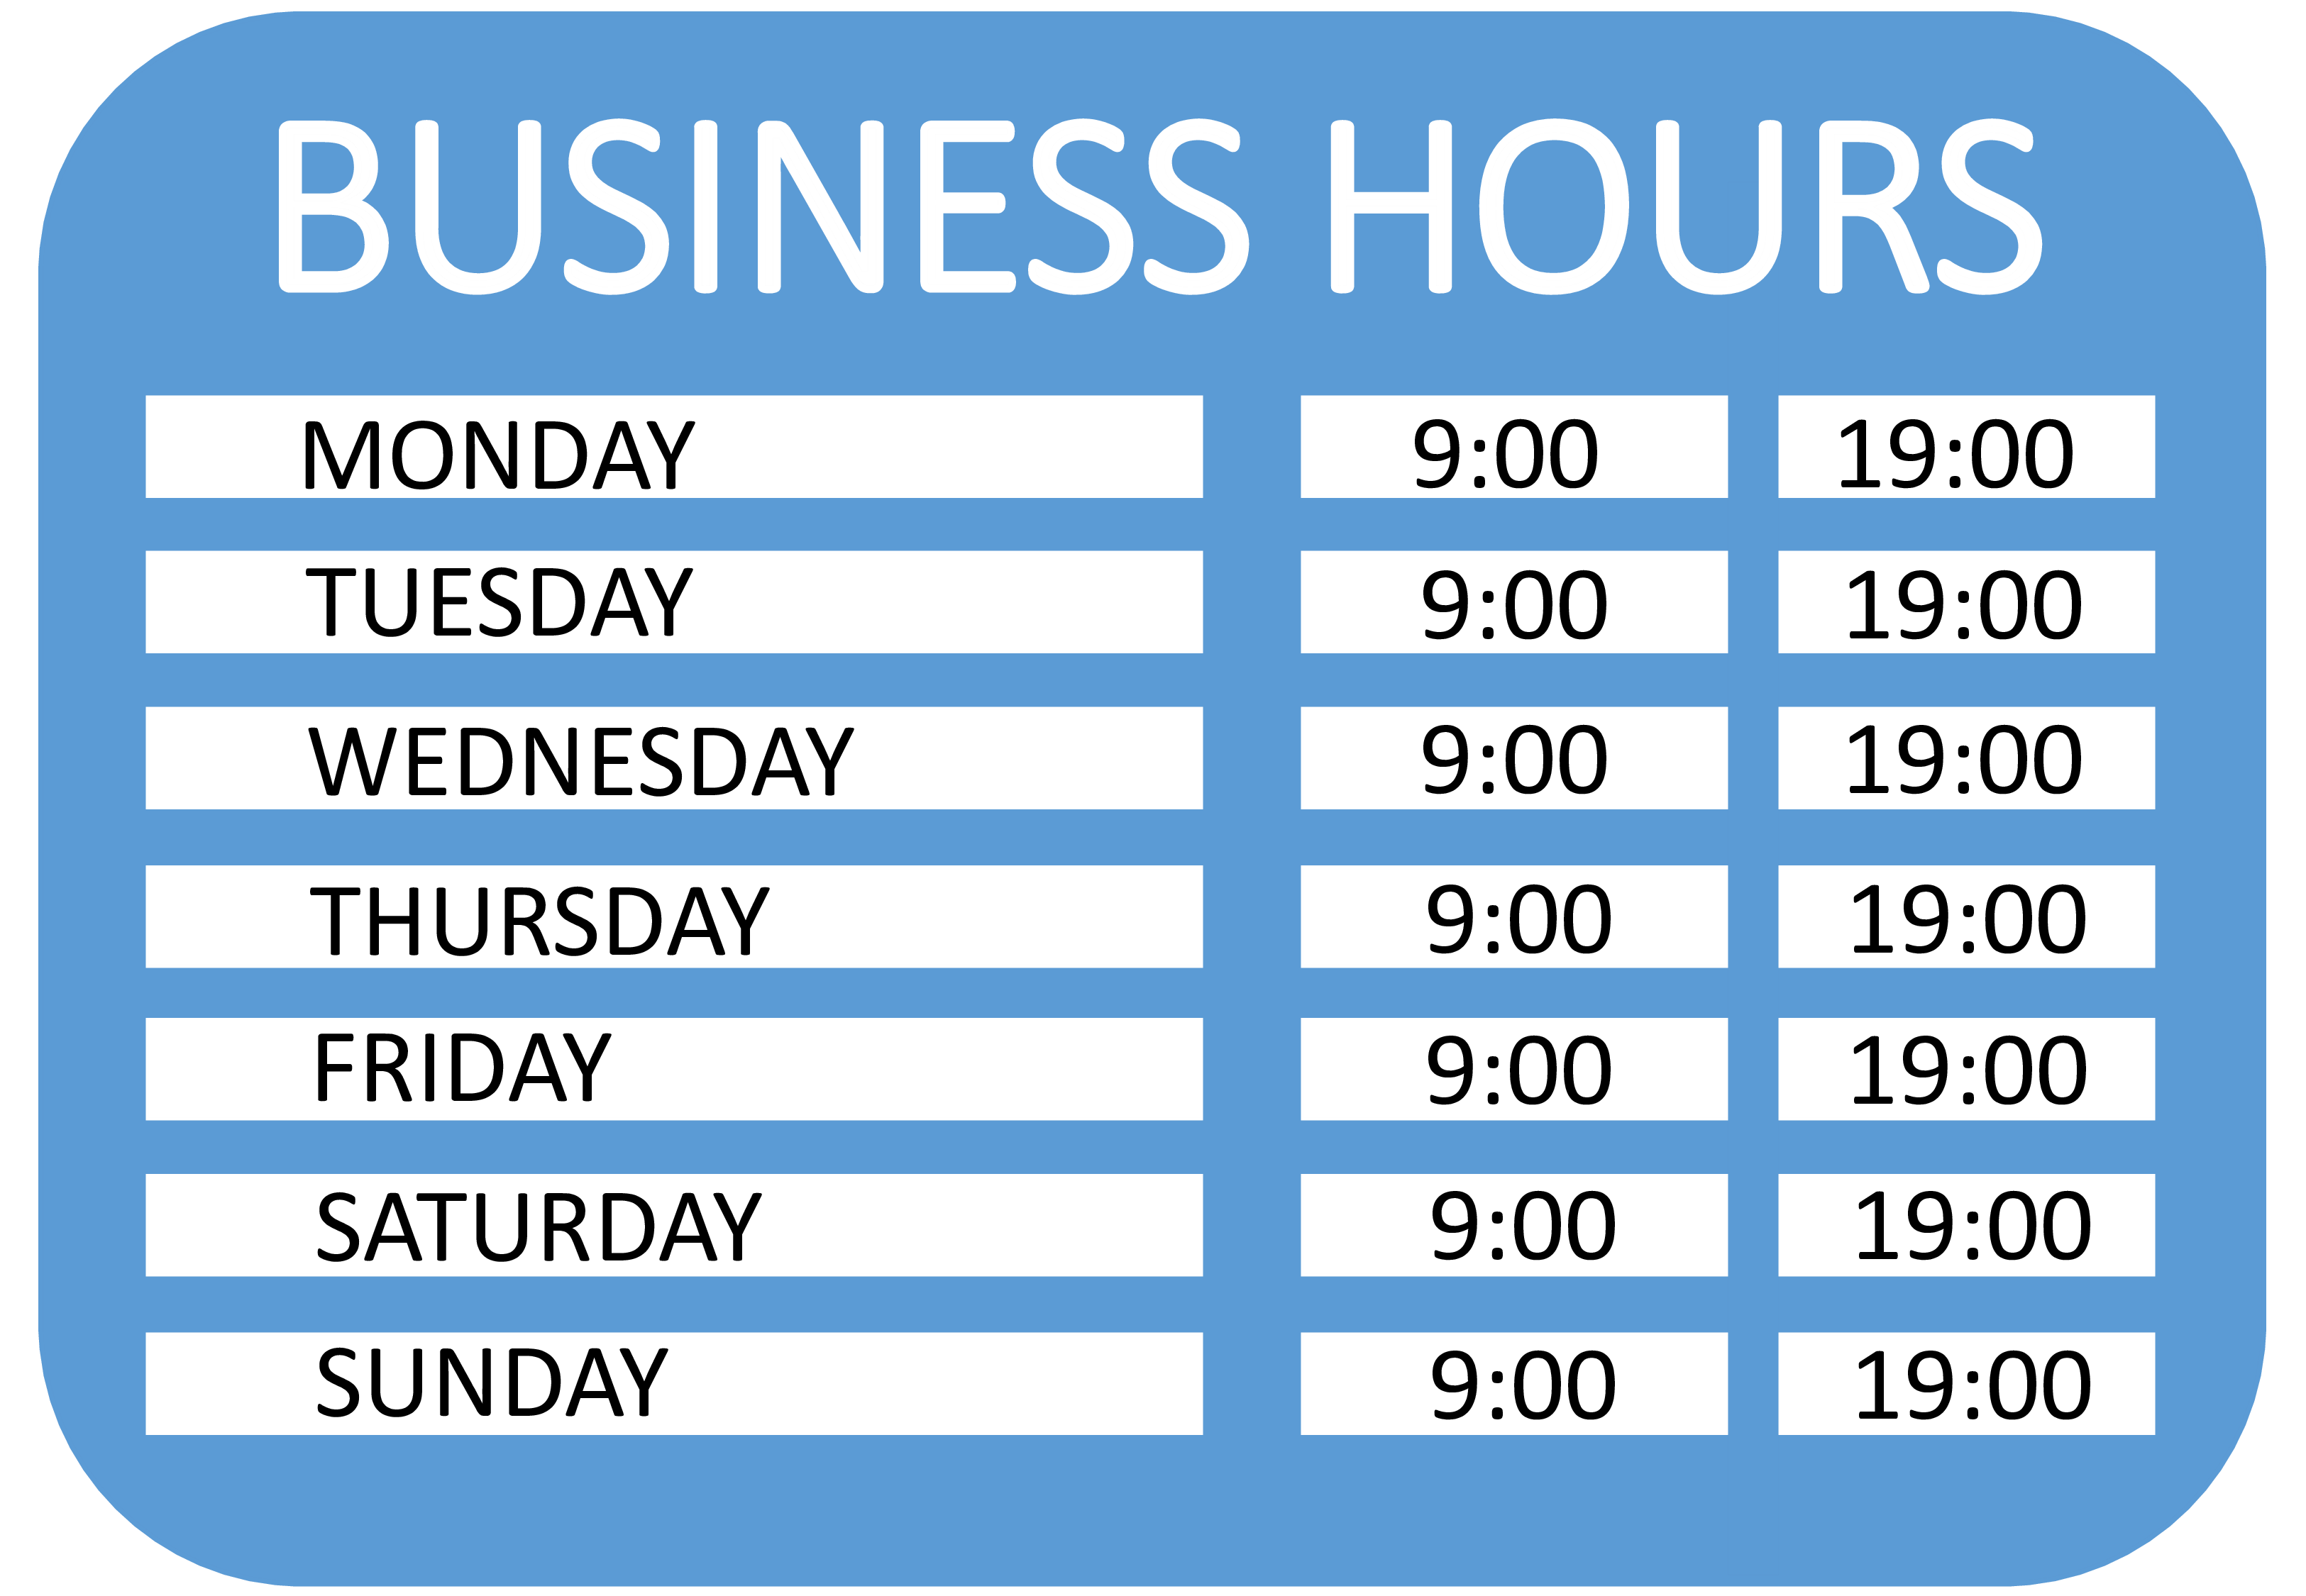 Operating Hours Sign Main Image Template